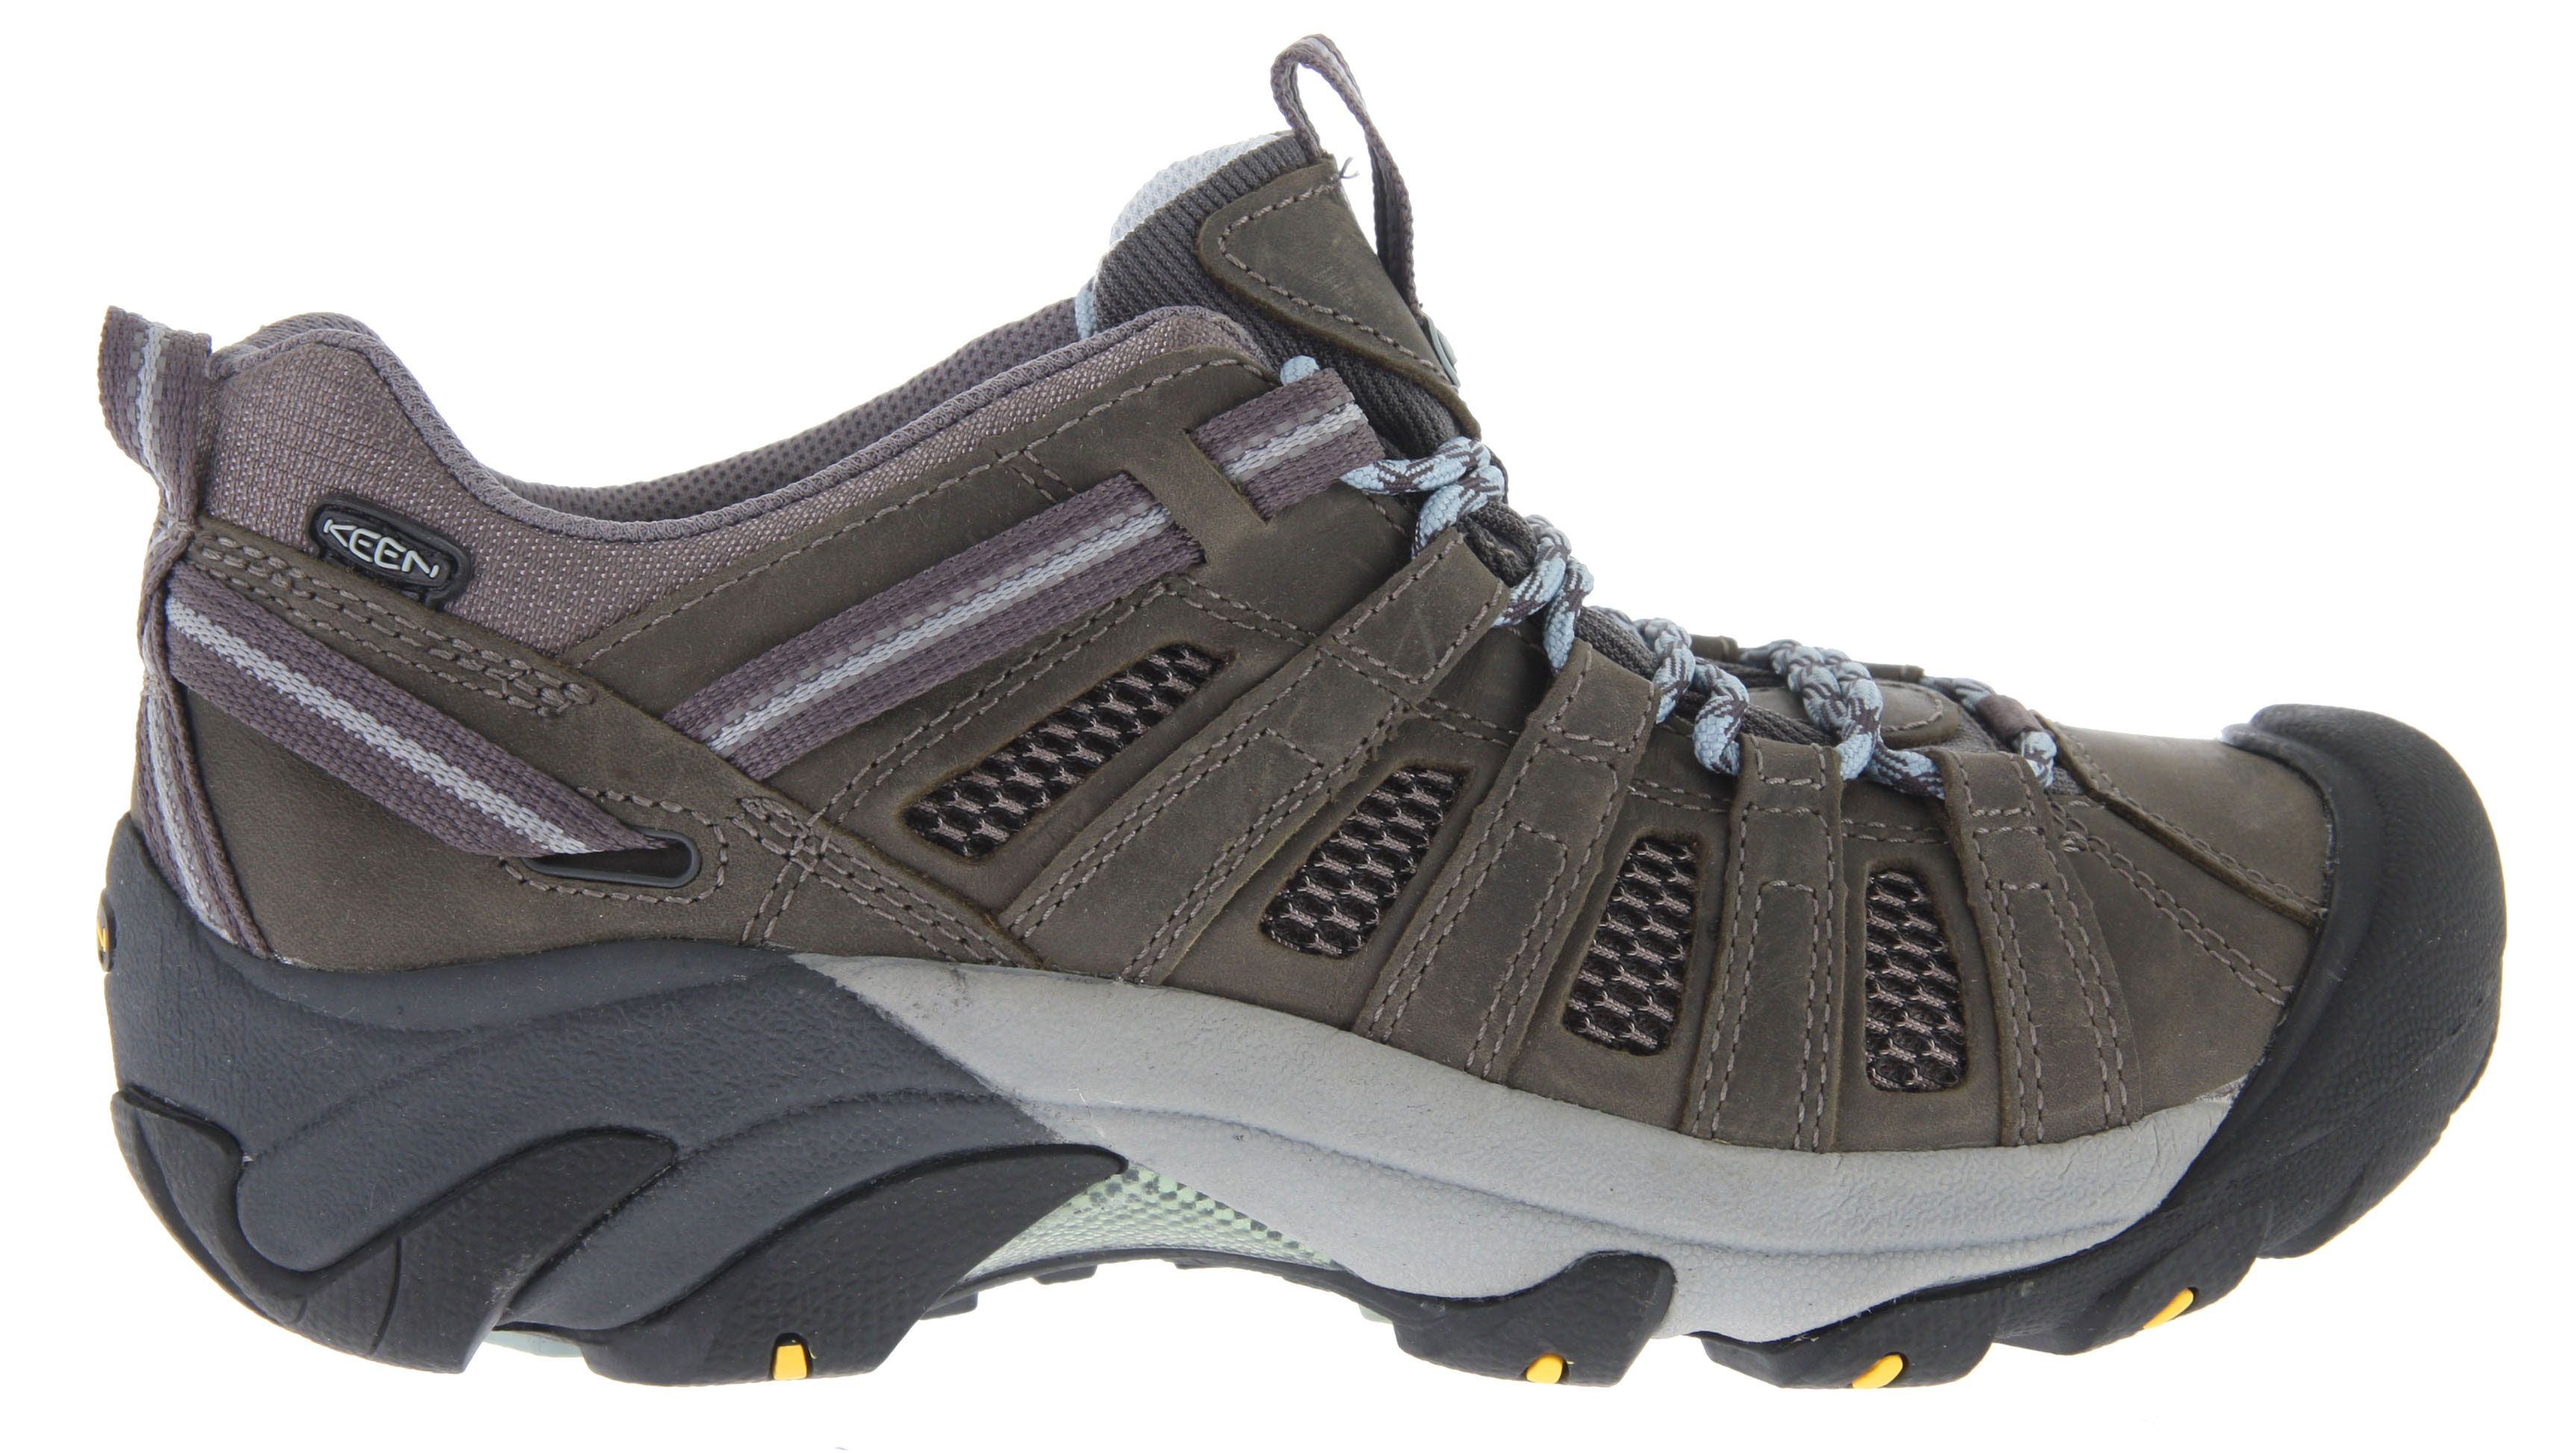 "Camp and Hike The Voyageur Mid hiking shoe from KEEN is a rugged cruiser with its windows down for ventilation. Stripped of its waterproof barrier in favor of mesh lining, the Voyageur Mid allows for more ventilation on hot summer days. The aggressive outsole has 4mm lugs to bite into the terrain, providing excellent traction while the ESS shank provides torsional stability for a secure ride from valley to mountaintop.Key Features of the Keen Voyageur Mid Hiking Shoes: Weight: 15.20 oz / 430.912 grams Fit Tip: We find this style runs about a 1/2 size small. Lining: Moisture wicking textile Upper: Leather, webbing and mesh Rubber: Non-marking rubber outsole Collar Height: 5.75"" Calf Circumference: 9.5"" Activities: Hiking Type: Boots, Shoes, Lace Up 4mm multi-directional lugs Dual-density compression molded EVA midsole Non-marking carbon rubber outsole Patented toe protection Removable metatomical Footbed S3 Heel support structure Torsion stability ESS shank Metatomical Footbed Design: This internal support mechanism is anatomically engineered to provide excellent arch support and cradle the natural contours of the foot. - $64.95"